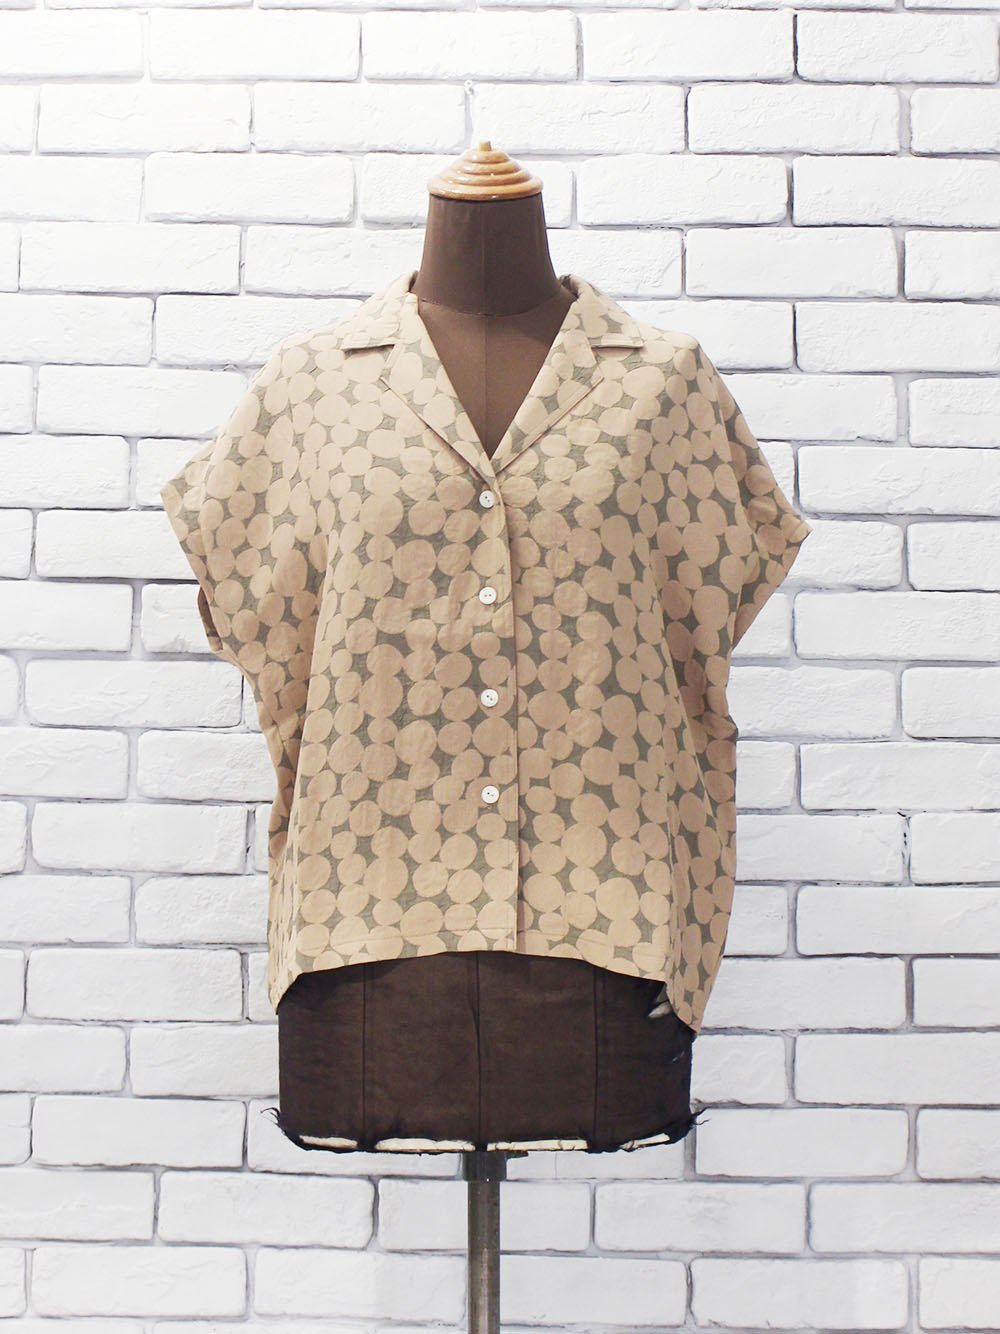 "<img class='new_mark_img1' src='https://img.shop-pro.jp/img/new/icons8.gif' style='border:none;display:inline;margin:0px;padding:0px;width:auto;' />Needles "" French Sleeve Blouse - Bubble Jq. (grey/pink)"""